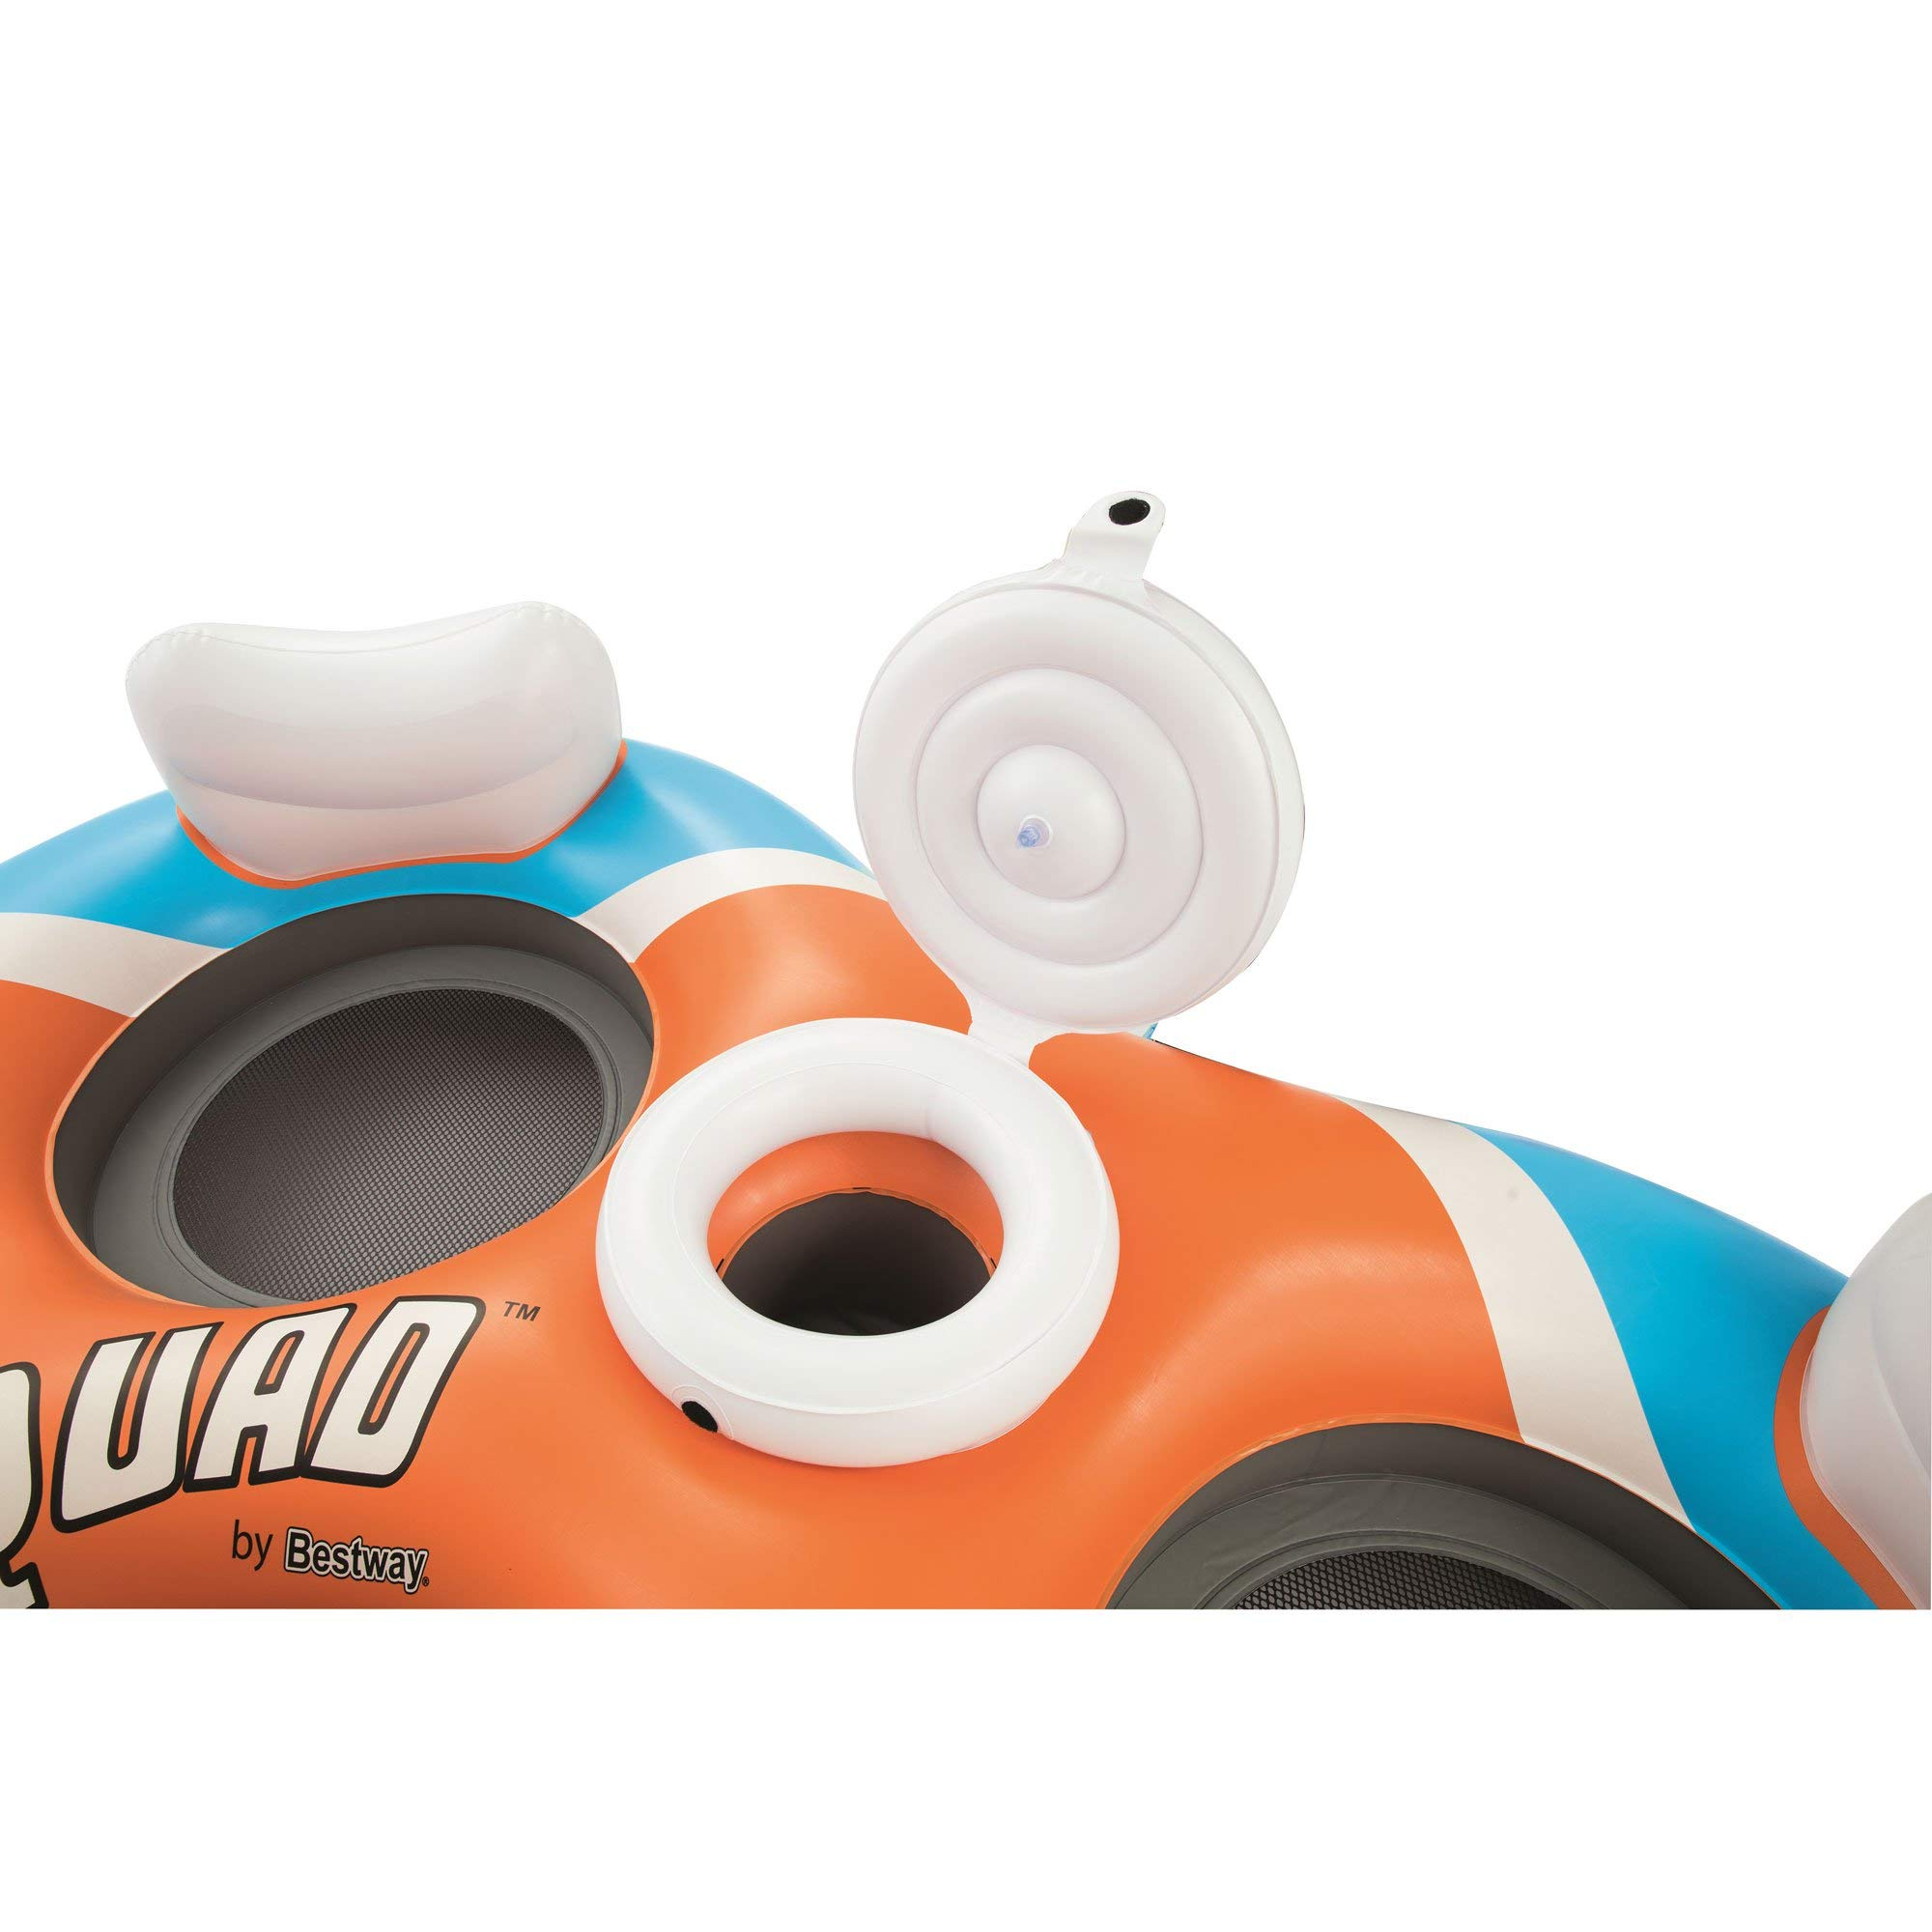 CoolerZ Rapid Rider X4 Inflatable 4-Person Island Tube by Bestway (Image #7)